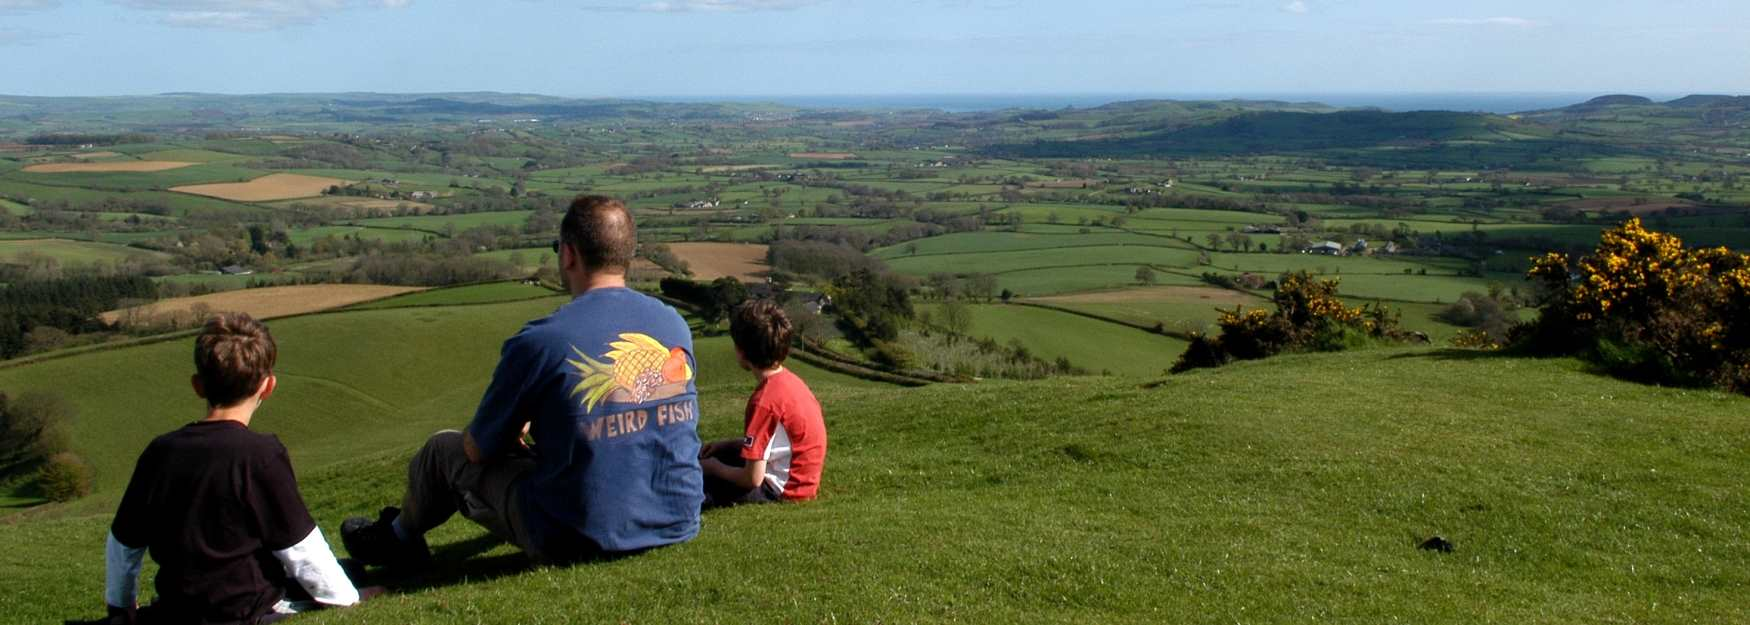 Sit back and admire the glorious West Dorset view